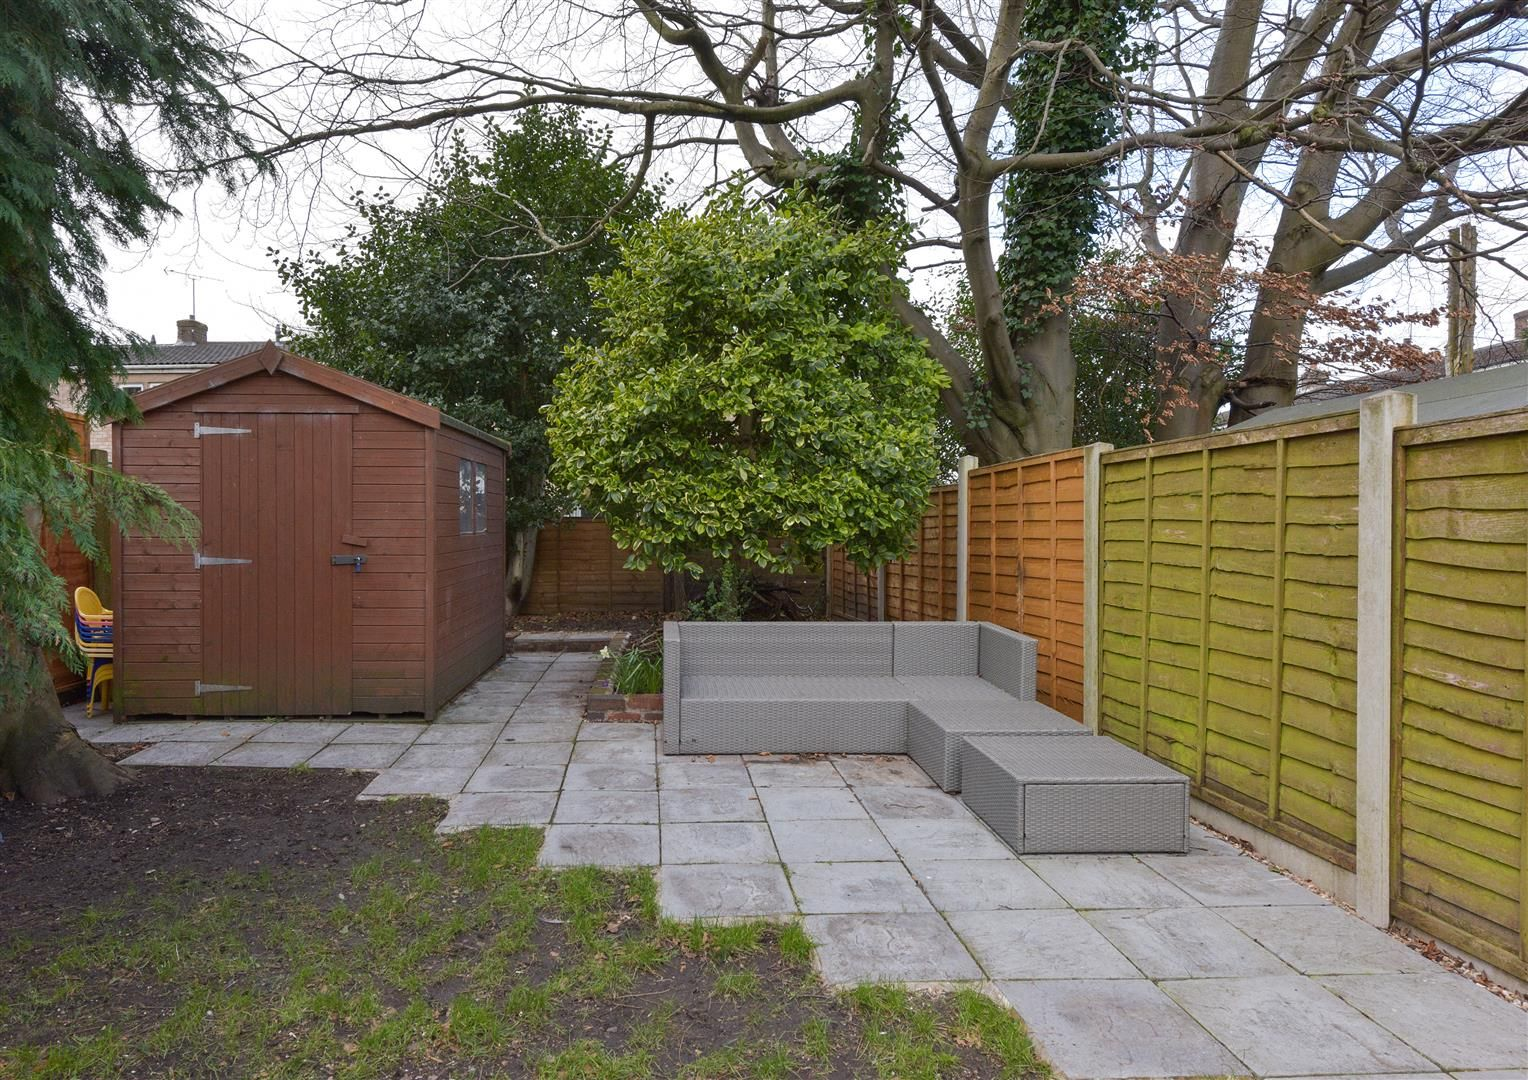 3 bed end-of-terrace for sale 18